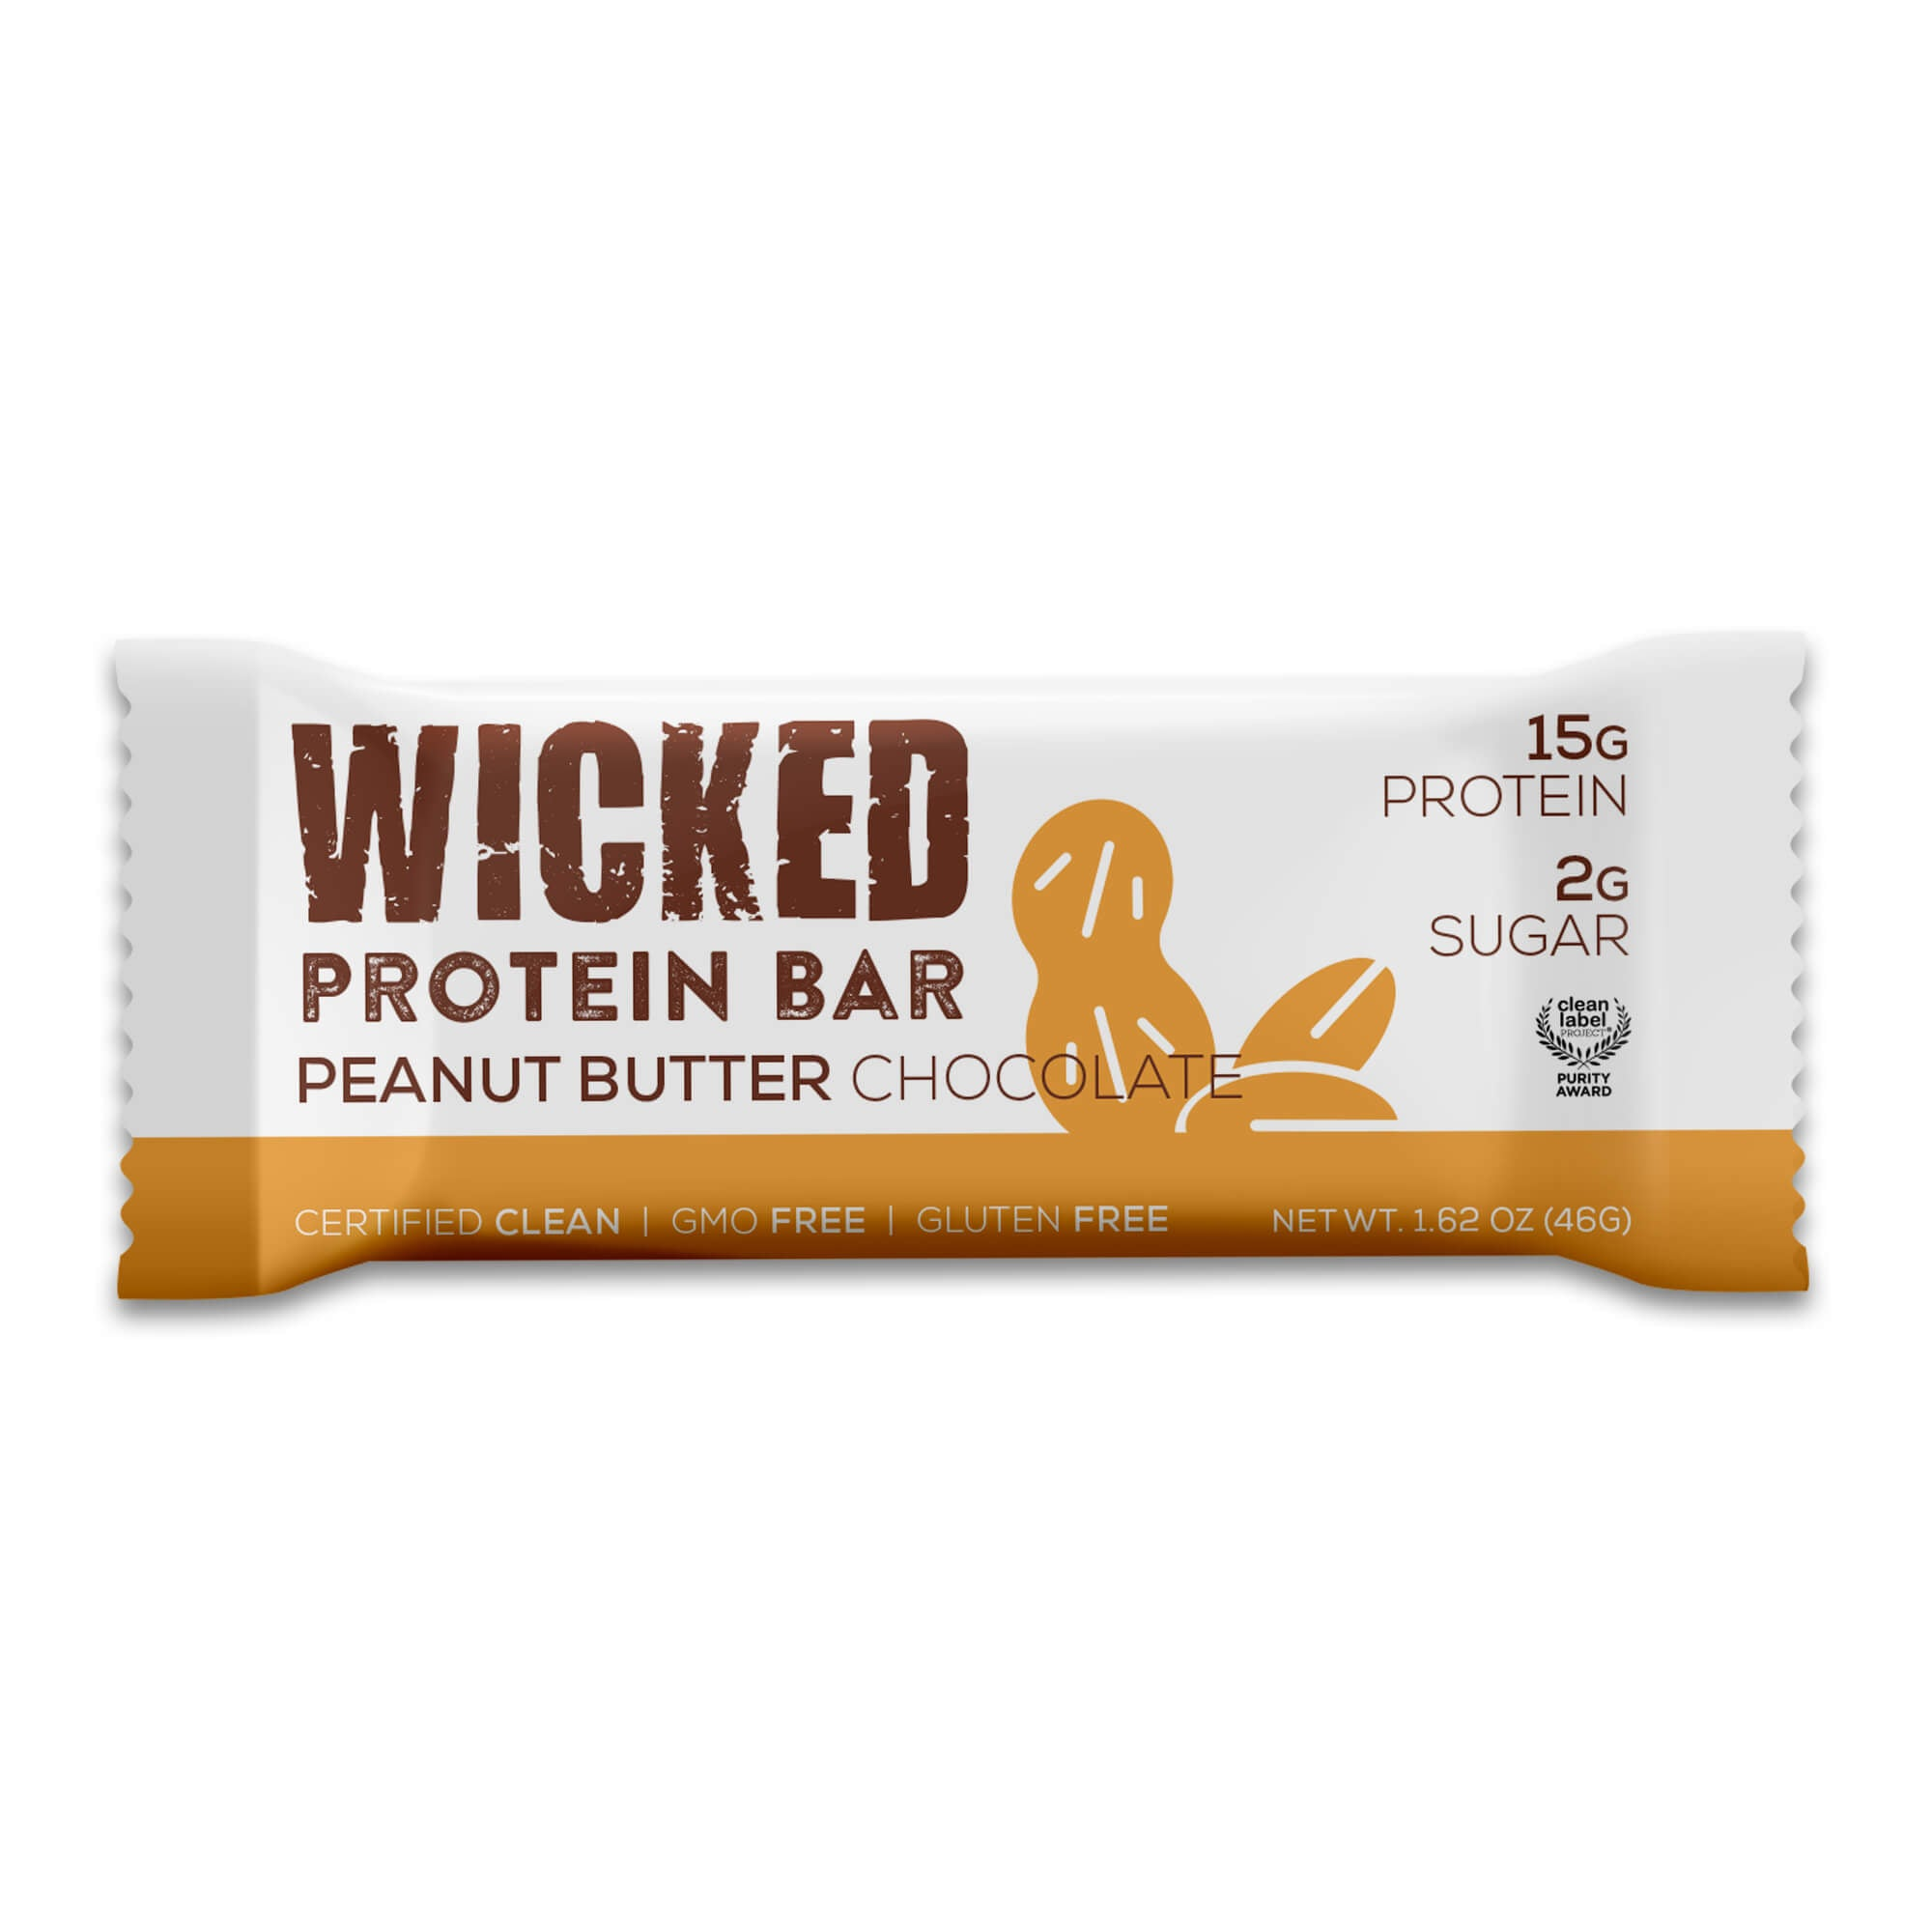 WICKED Peanut Butter Chocolate Protein Bar (12 Bars/Box) - WICKED Protein Bars